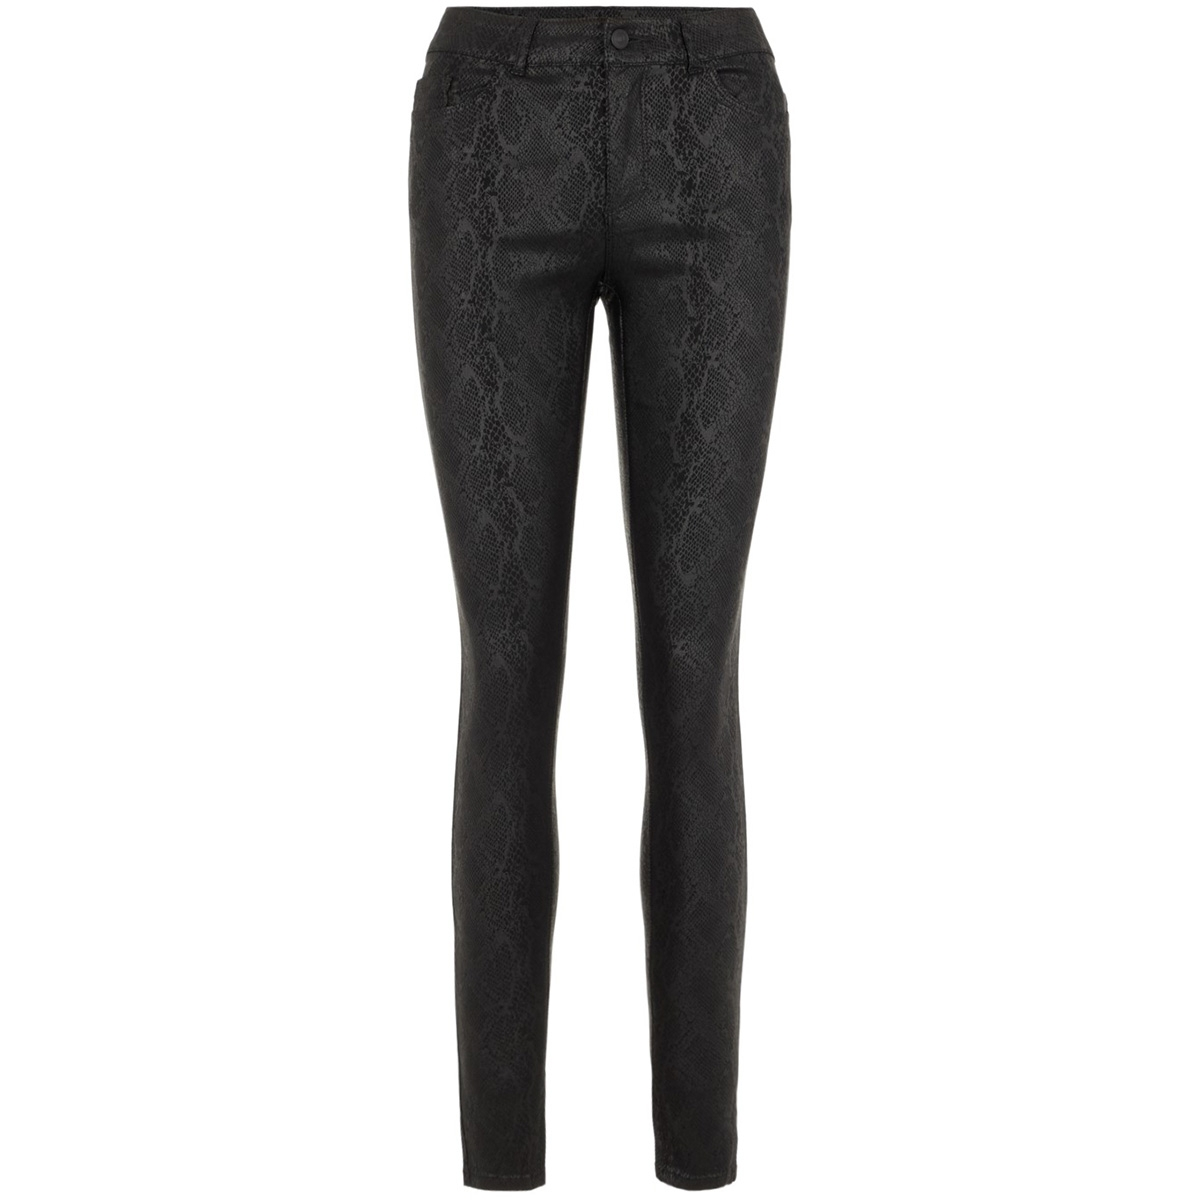 vmseven mr s smooth coat snake pant 10222950 vero moda broek black/coated snake